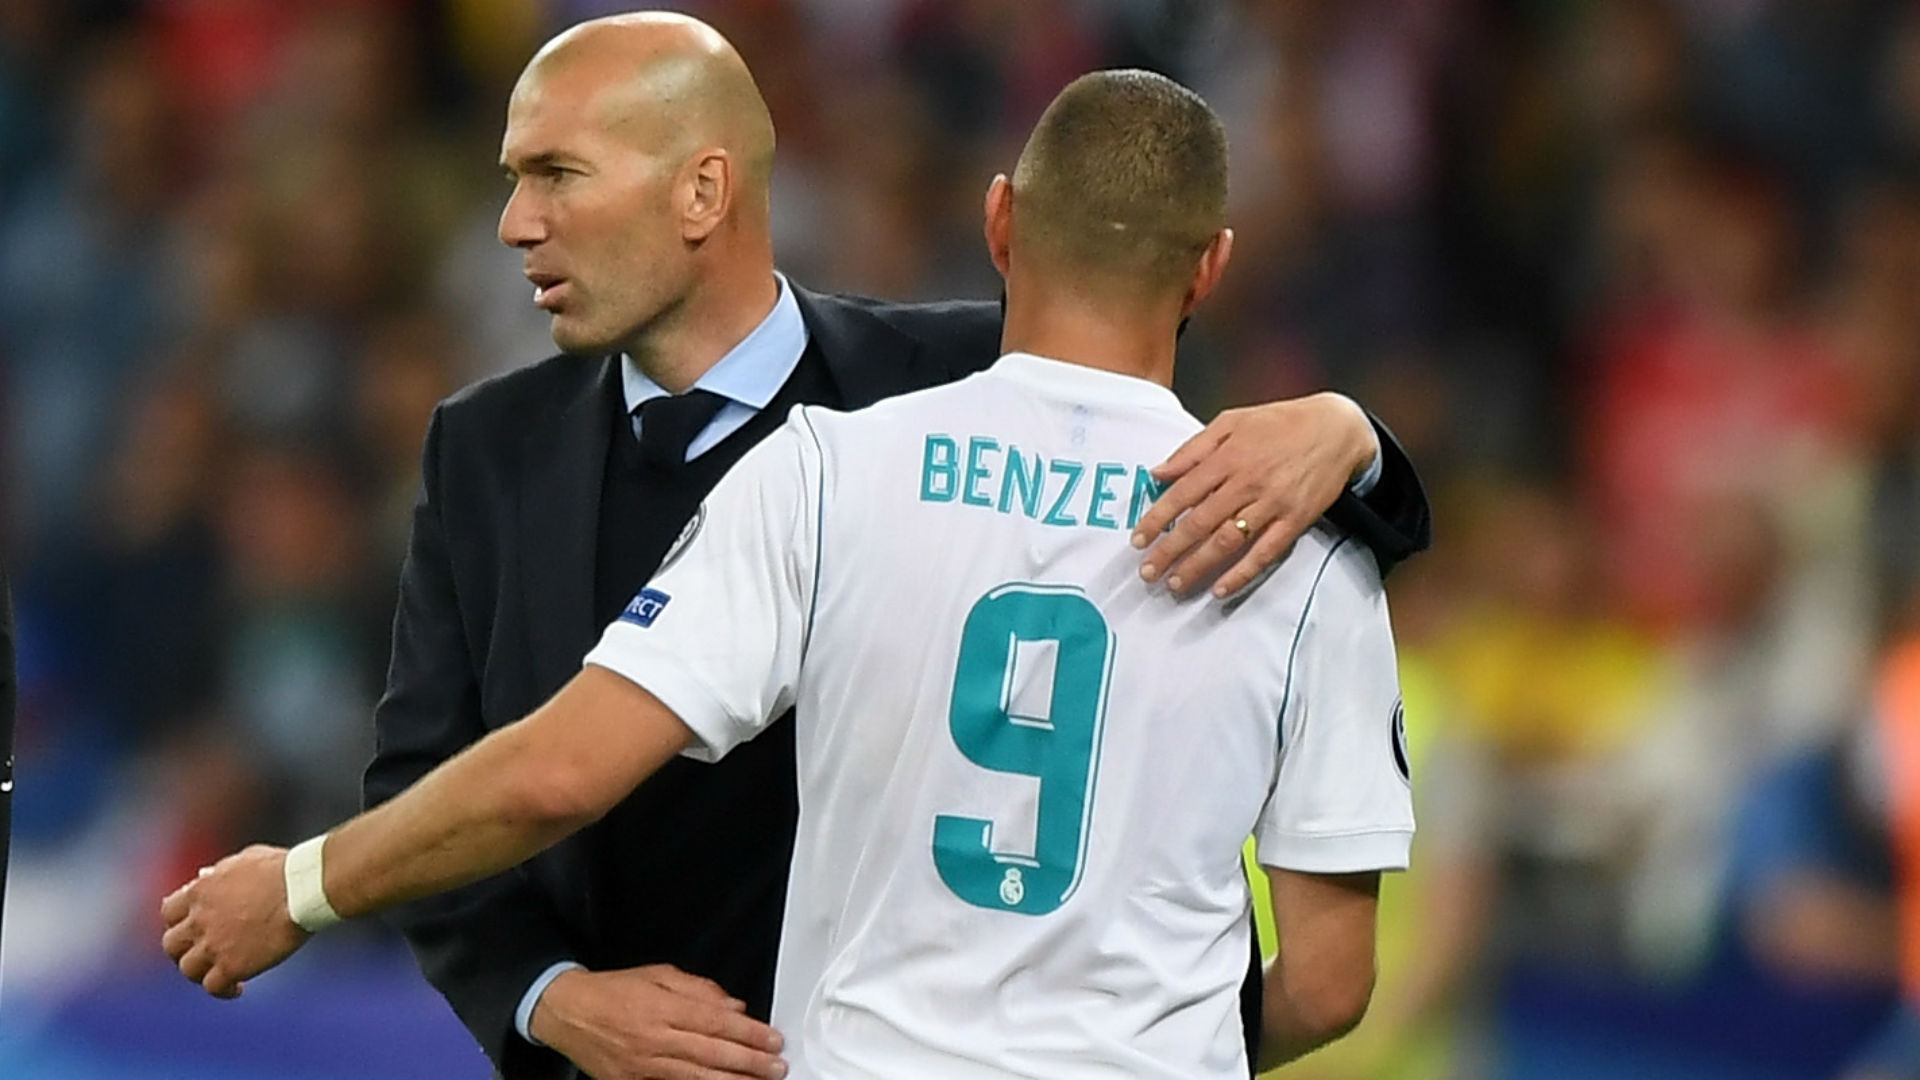 Zidane like a brother to Benzema